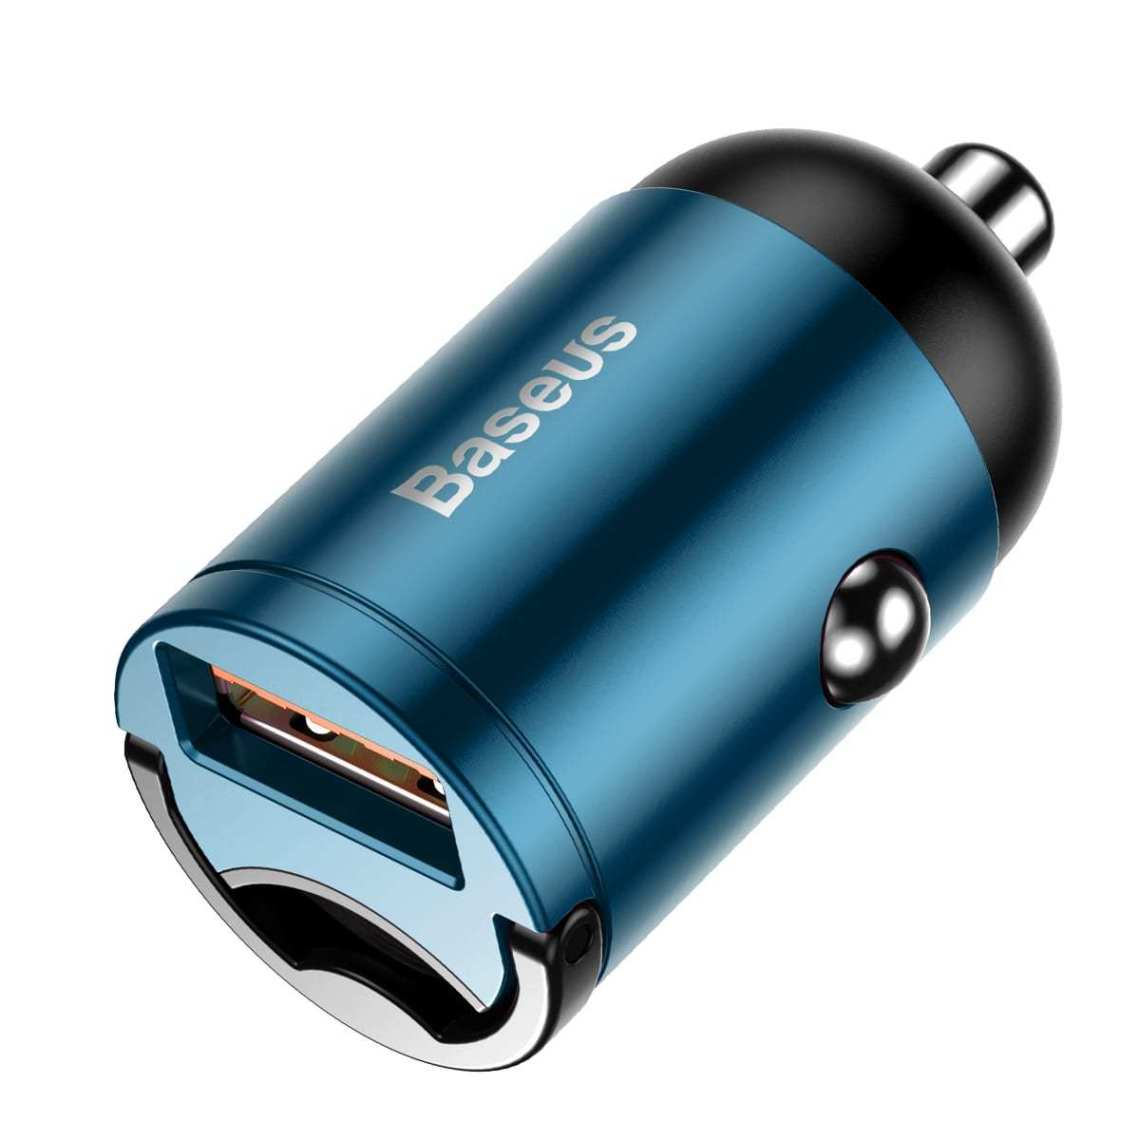 Tiny Star Mini Quick Charge Car Charger USB Port 30W | Blue | Baseus